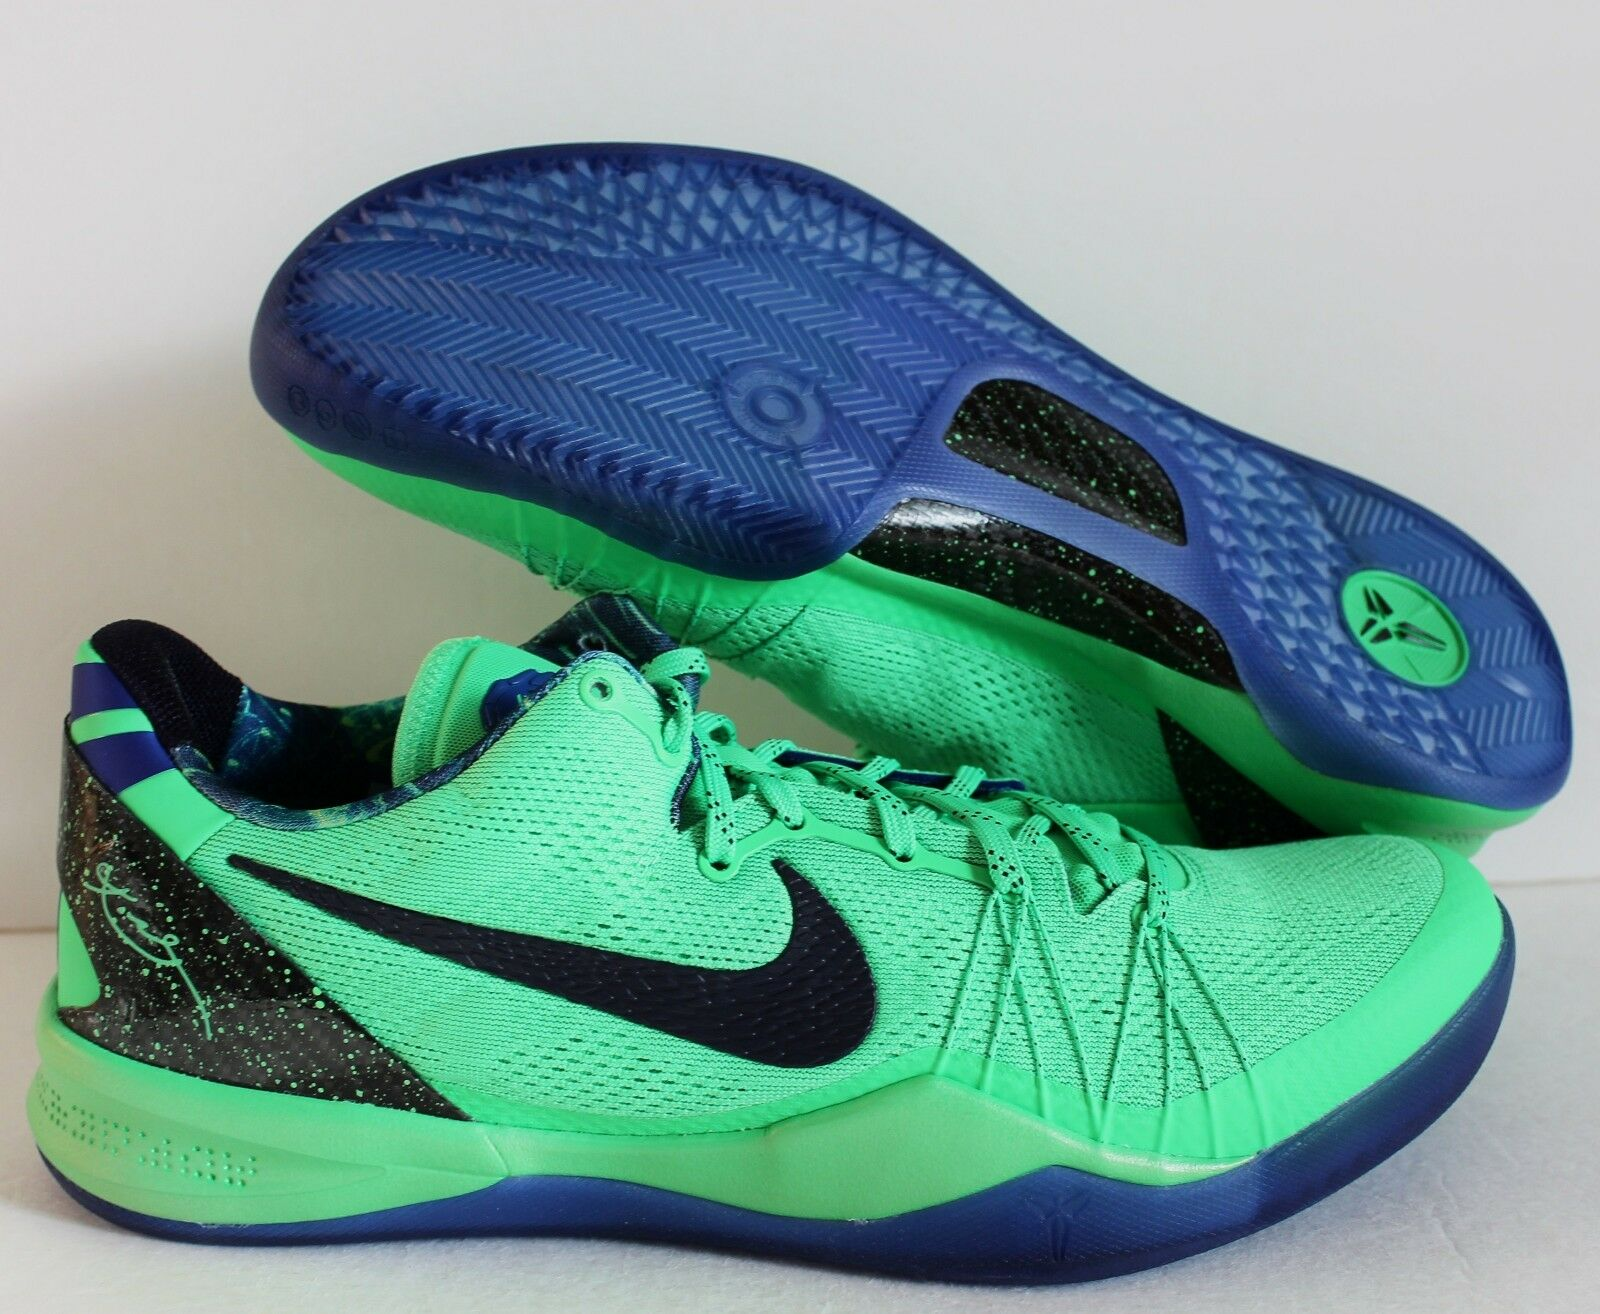 NIKE KOBE 8 VIII SYSTEM ELITE SUPERHERO POISON GREEN-BLUE Price reduction New shoes for men and women, limited time discount